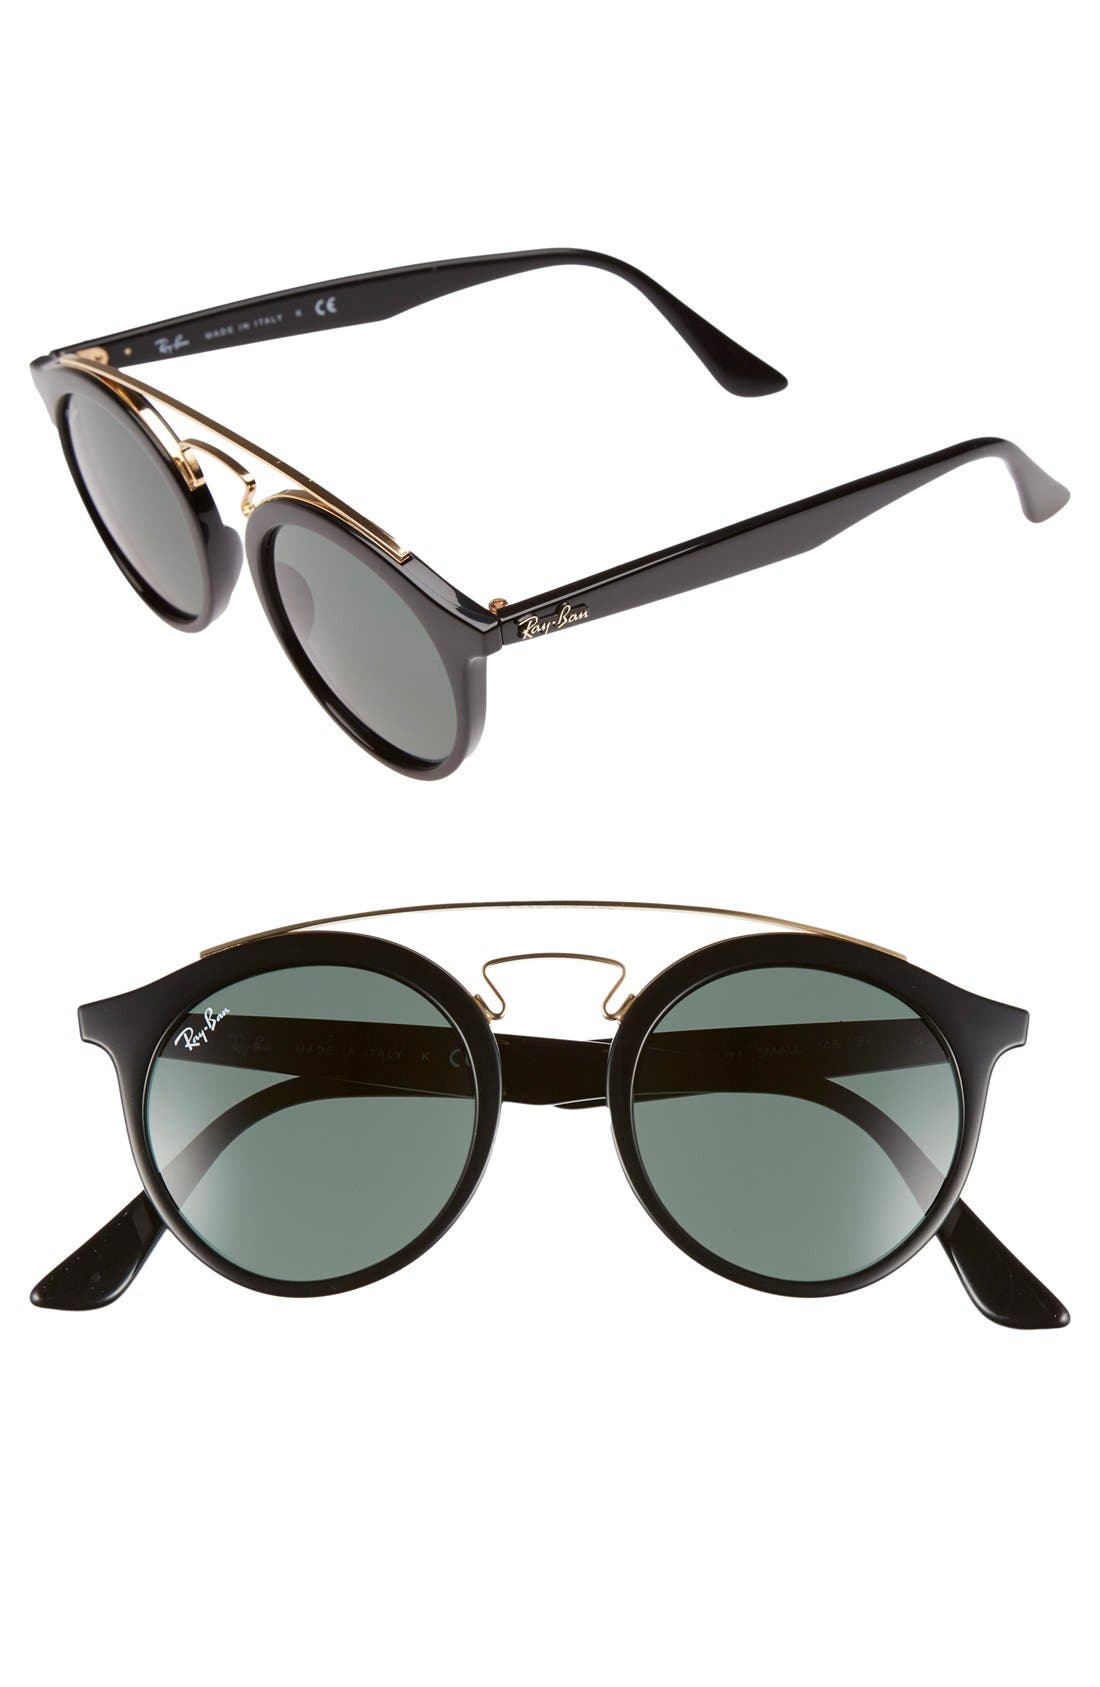 Highstreet 46mm Sunglasses,                         Main,                         color, Black